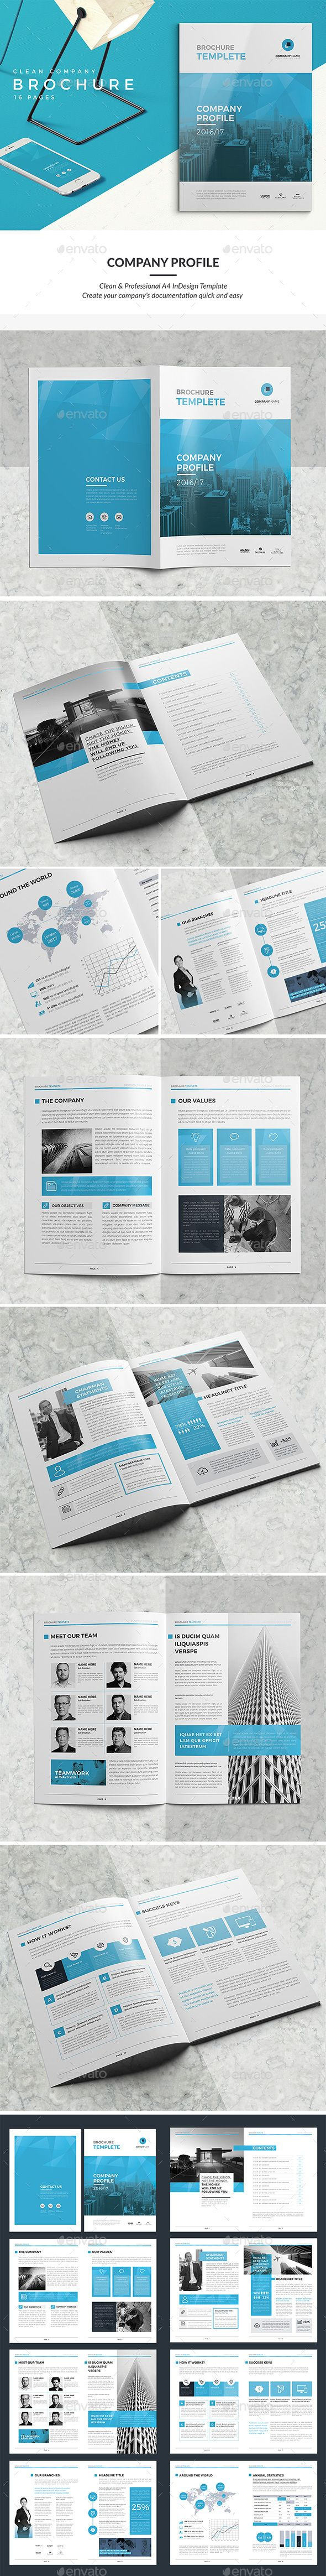 Clean Company Profile Brochure Template InDesign INDD #download